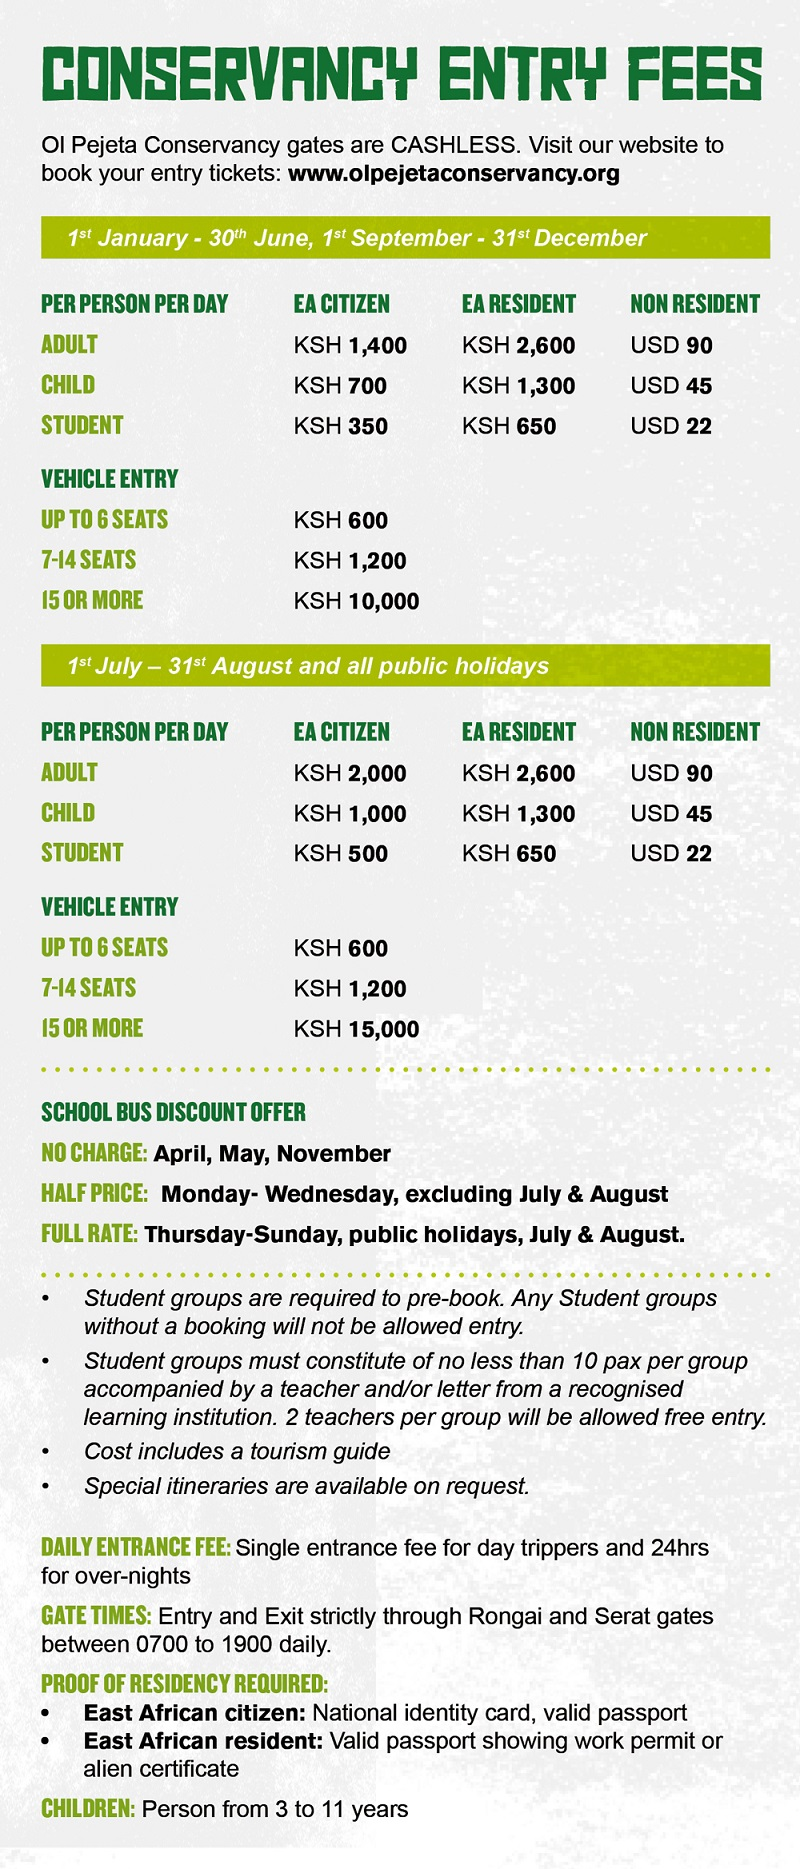 Ol Pejeta Conservancy Fees